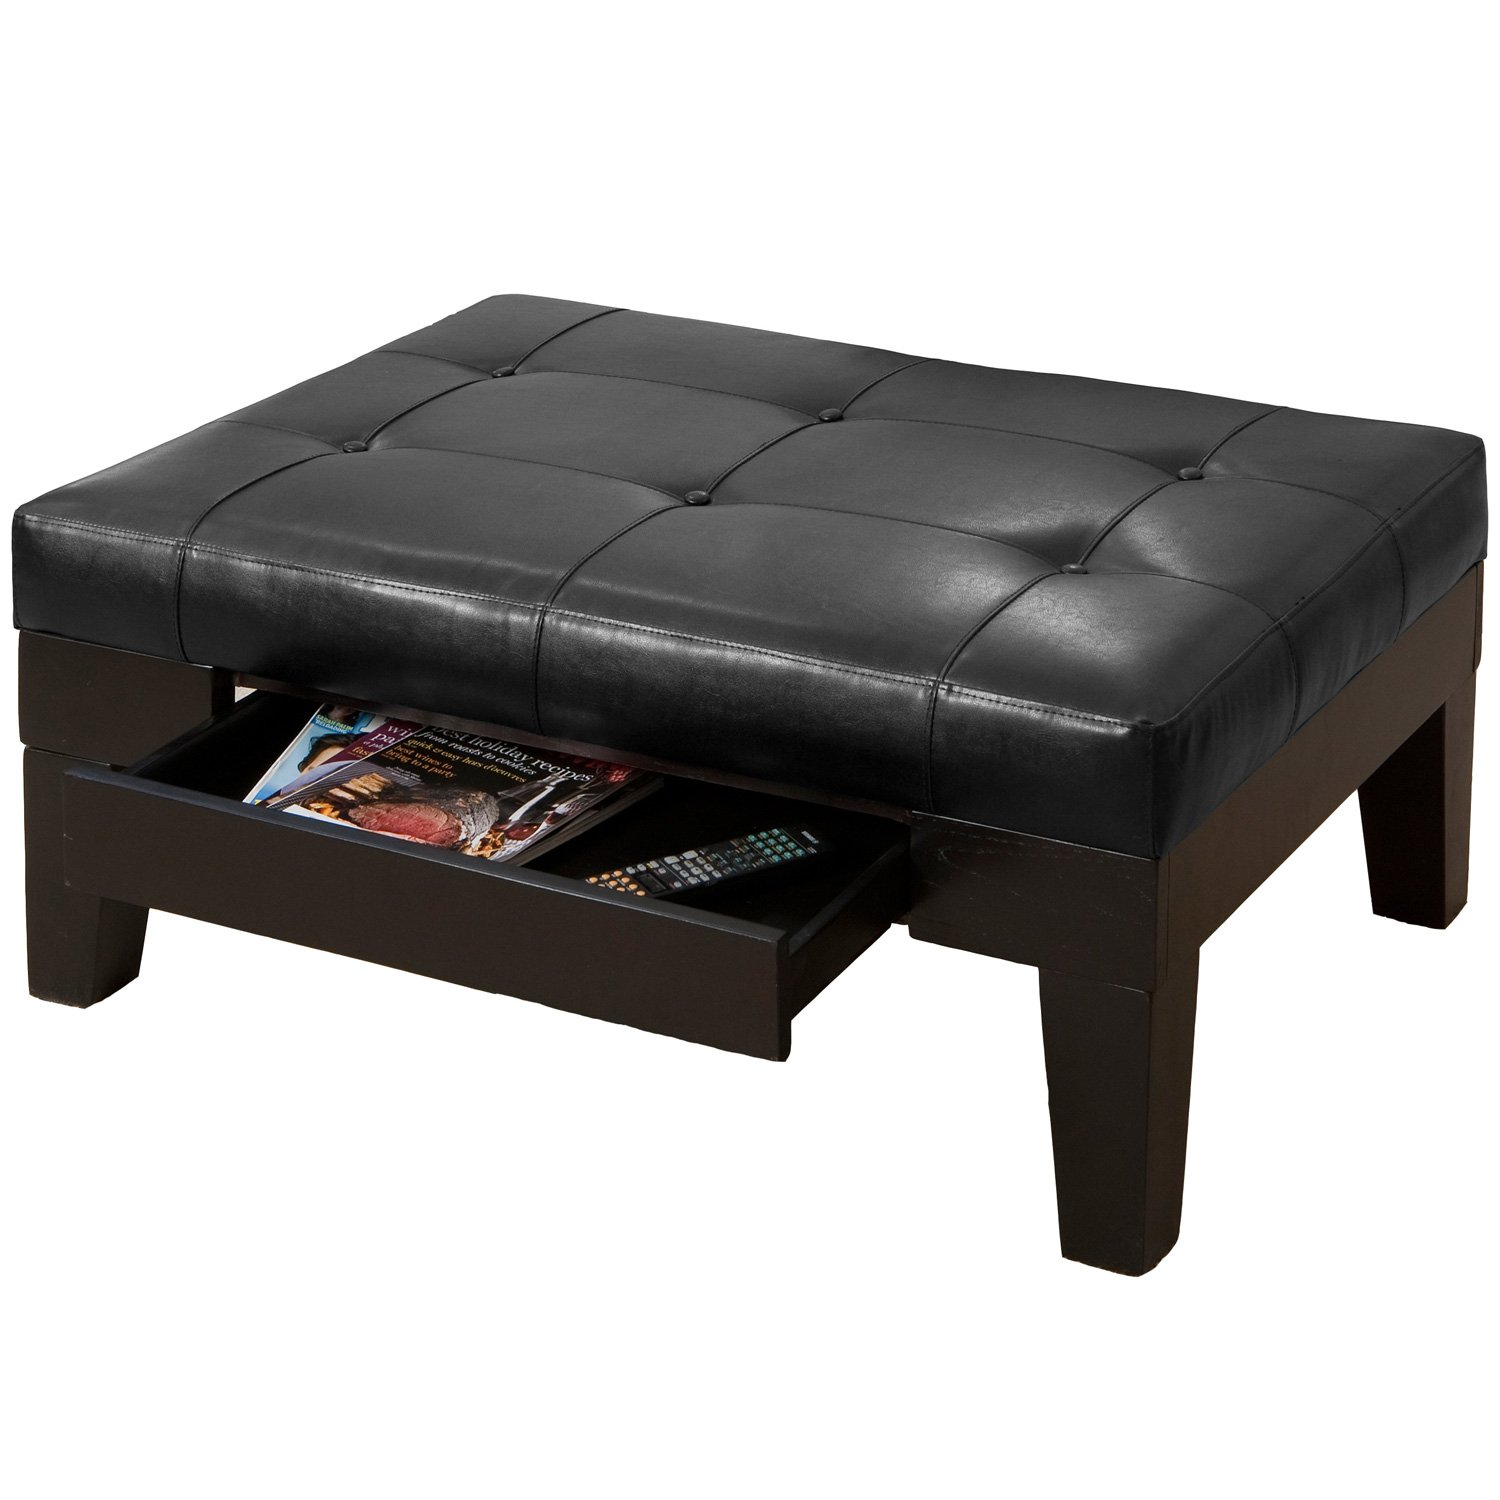 Amazon.com Best Selling Chatham Leather Storage Ottoman Black Kitchen u0026 Dining  sc 1 st  Amazon.com & Amazon.com: Best Selling Chatham Leather Storage Ottoman Black ... islam-shia.org